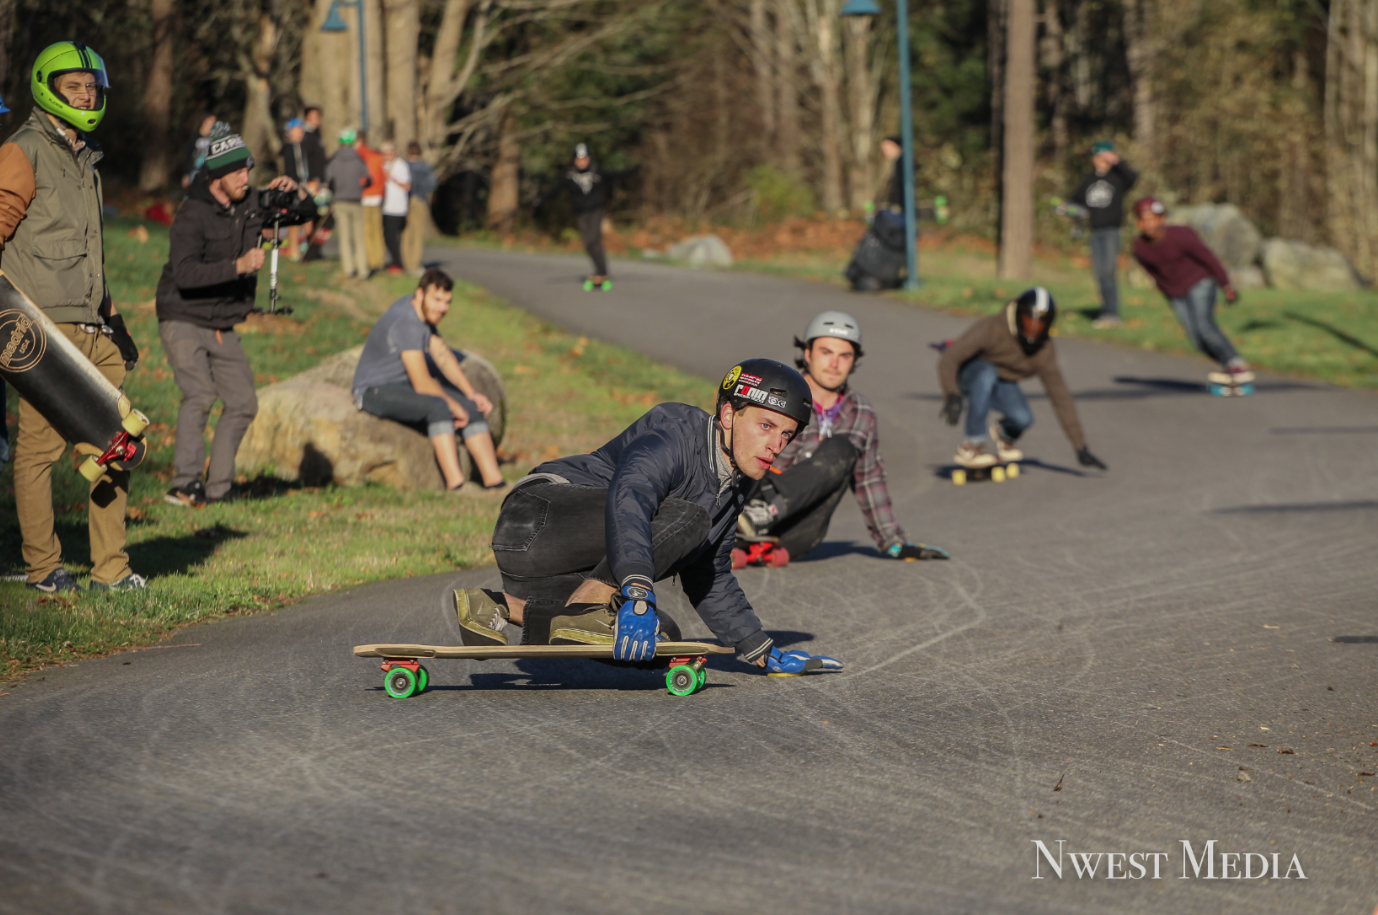 Triple Crown of Downhill in Washington State